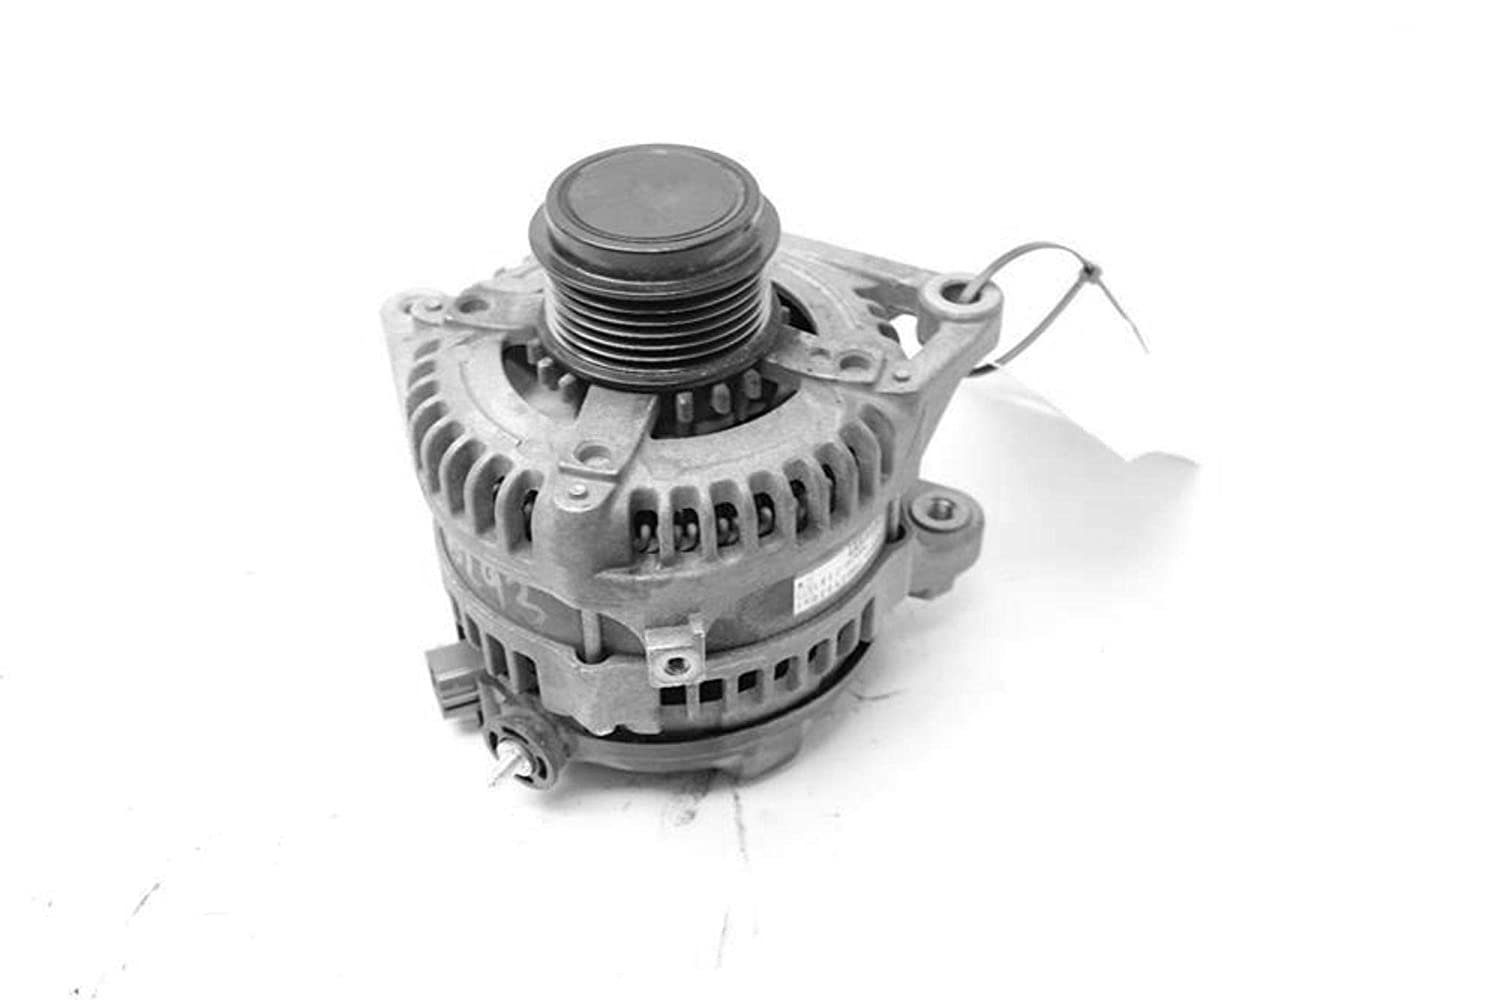 Grade A Alternator fits Toyota Highlander Venza 2.7L VIN A 5th digit 4 cylinder 1ARFE engine 150 amp Certified Used Automotive Part - Replaces 2706036040,270600V030 |